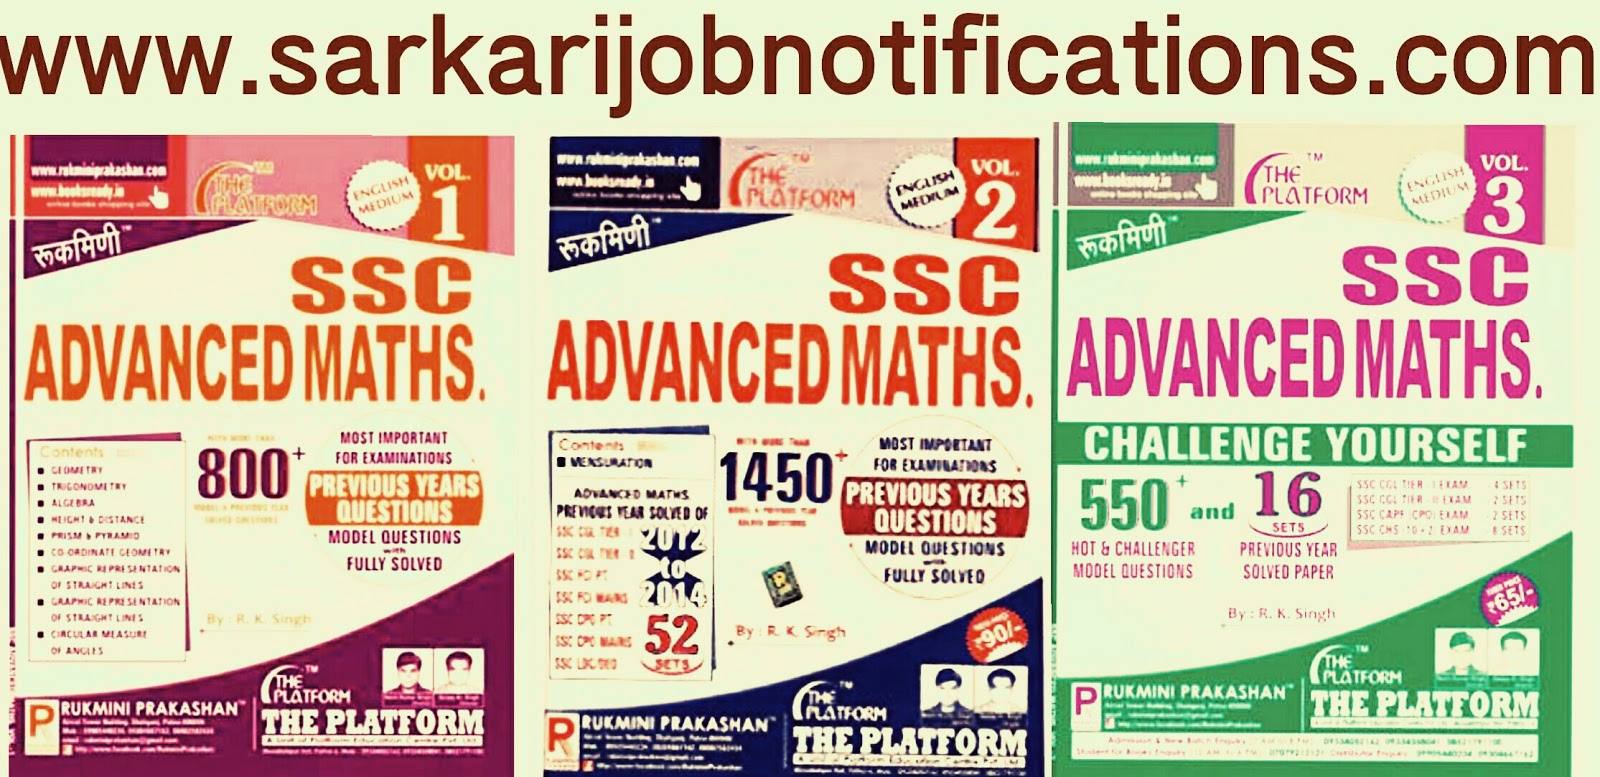 SSC ADVANCED MATHS THE PLATFORM RUKMINI PRAKASHAN all the